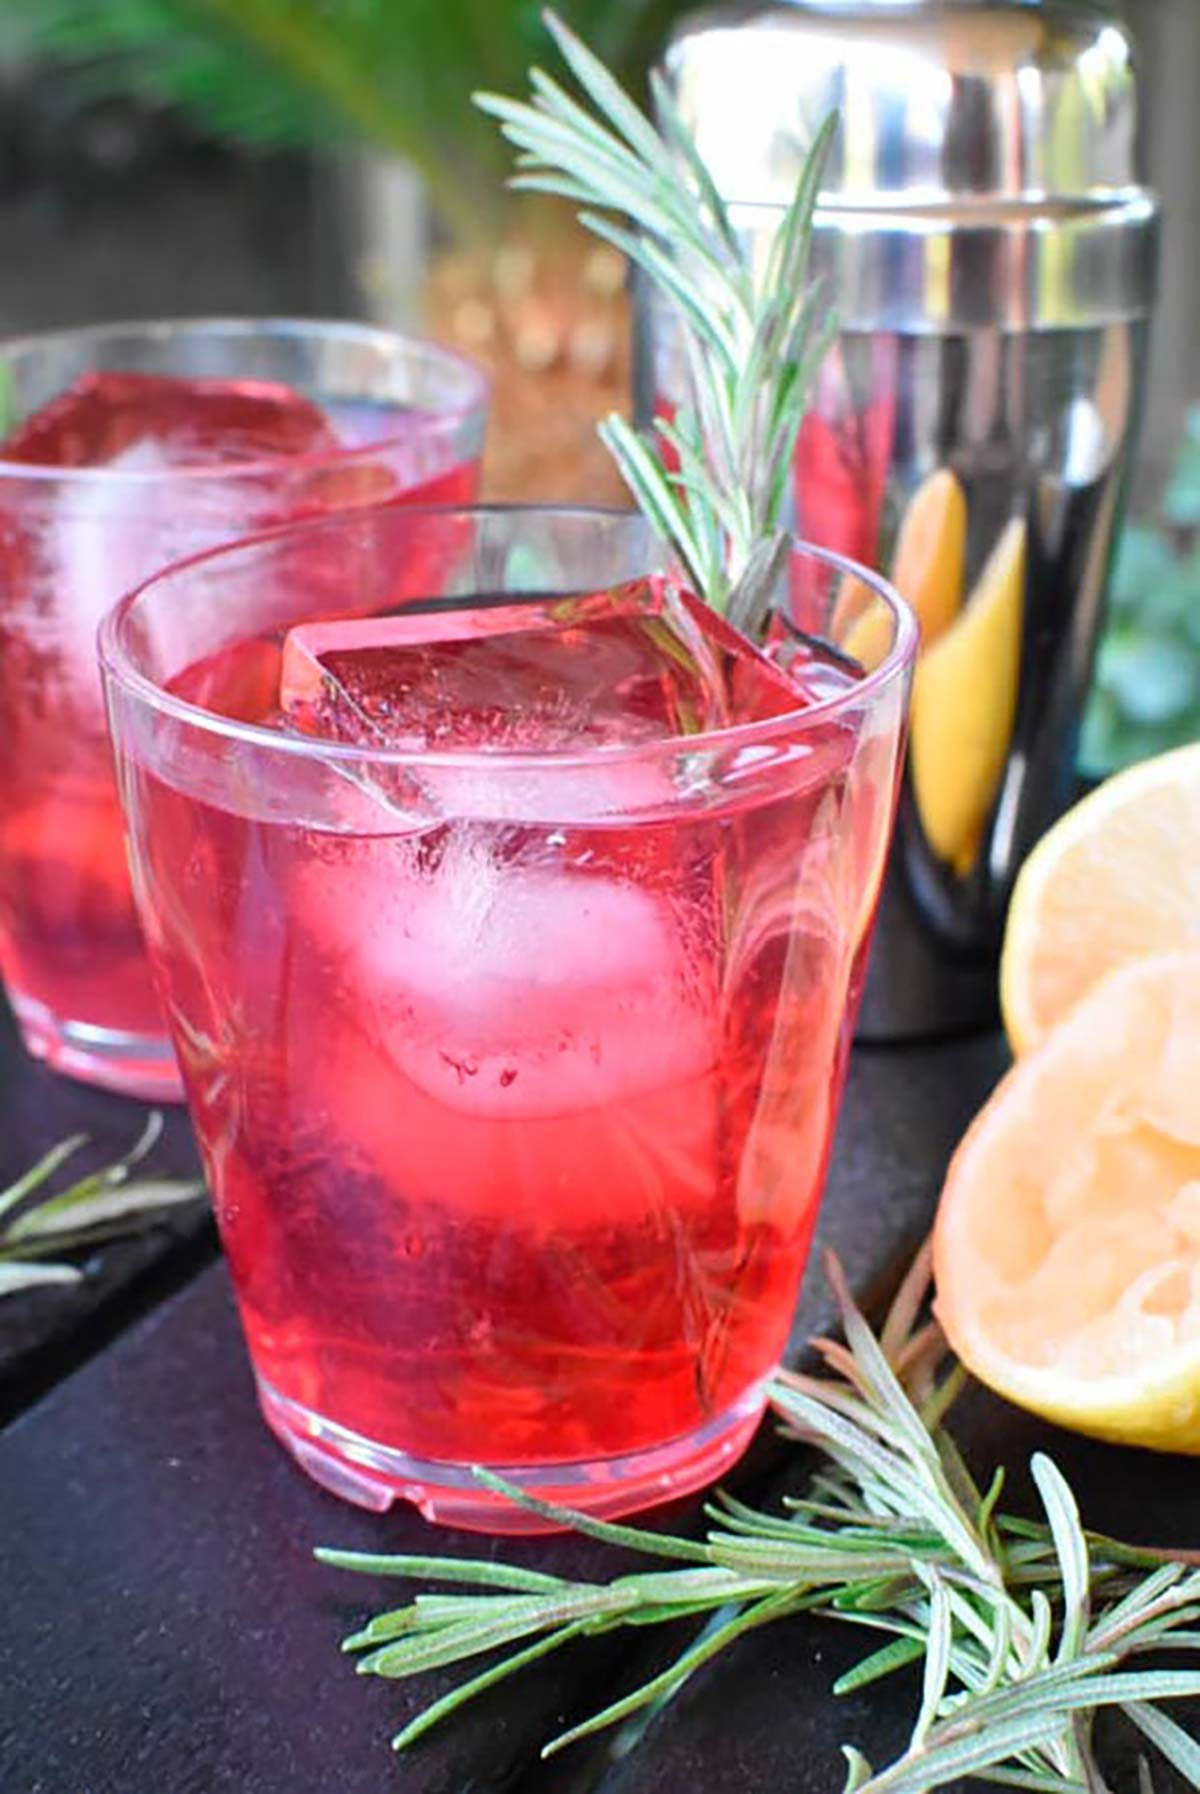 A cranberry cocktail garnished with rosemary.